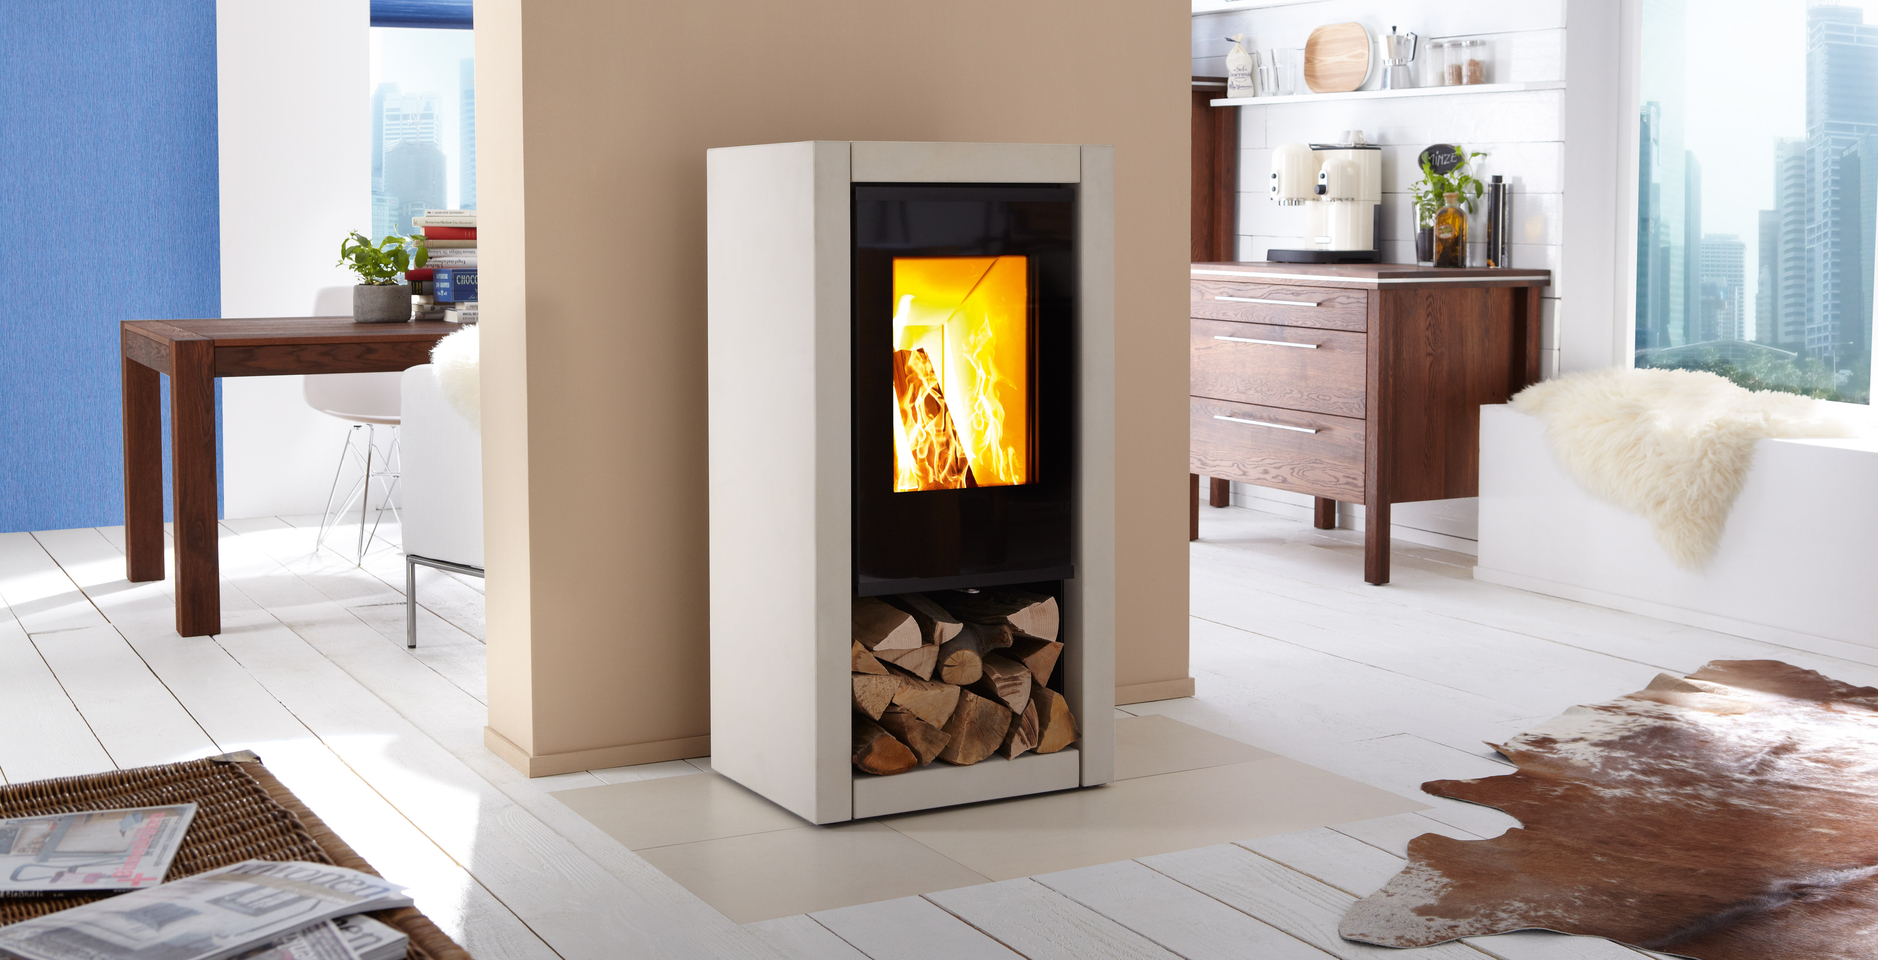 Pellet Kaminofen Piazzetta The Complete Spartherm Ambiente Stove Range Envirolution Stoves